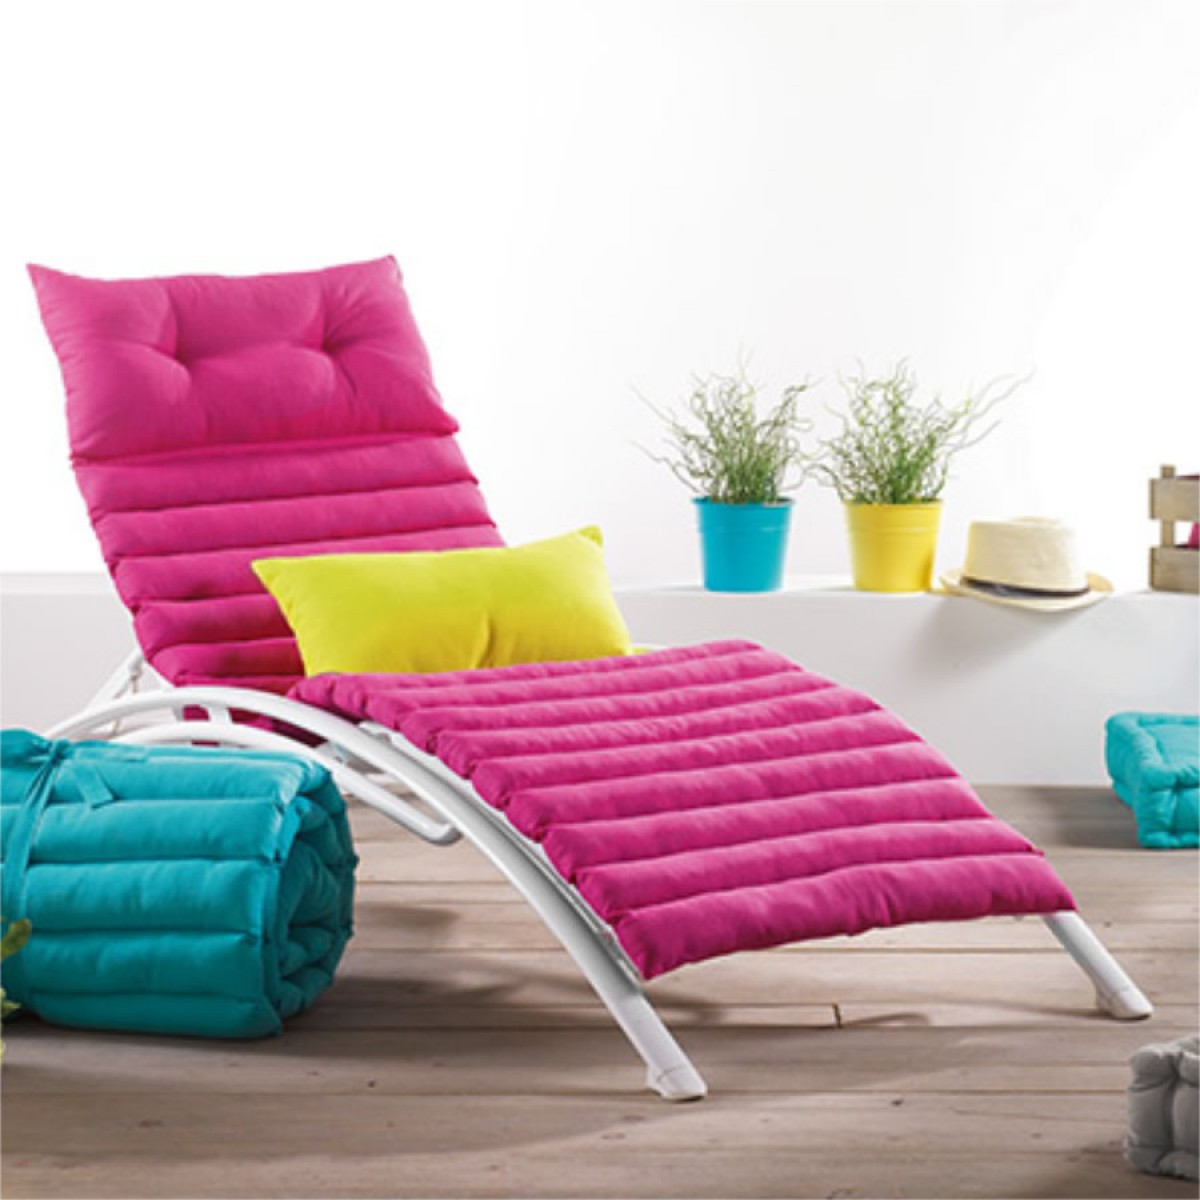 coussin de bain de soleil pacifique uni fuchsia 60x180cm les douces nuits de ma linge de maison. Black Bedroom Furniture Sets. Home Design Ideas